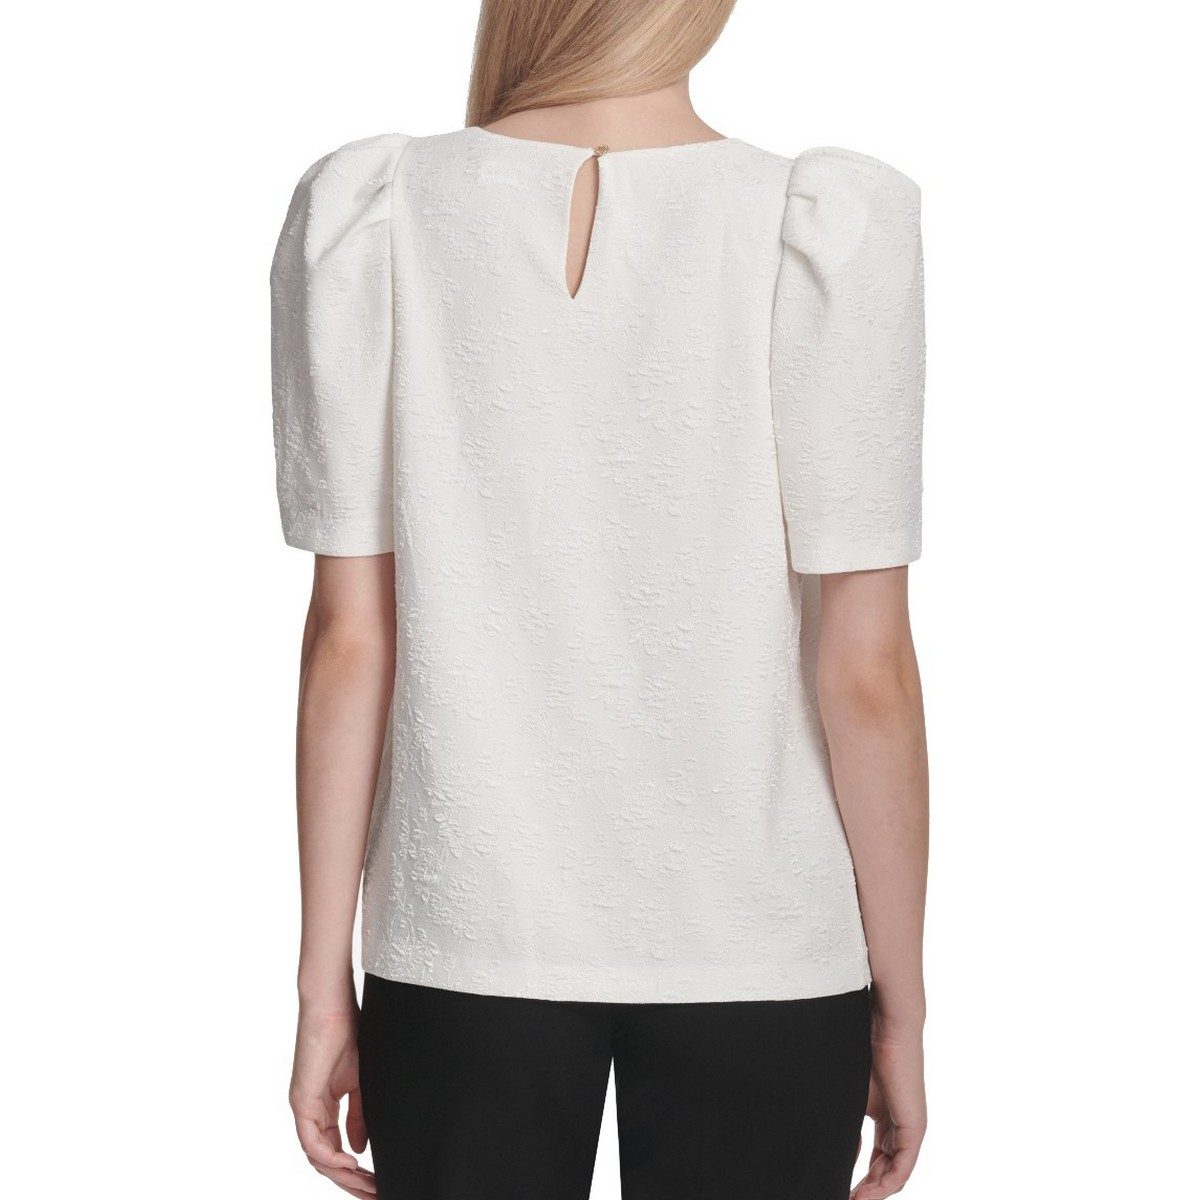 CALVIN-KLEIN-NEW-Women-039-s-Embroidered-Puff-Sleeve-Blouse-Shirt-Top-TEDO thumbnail 4